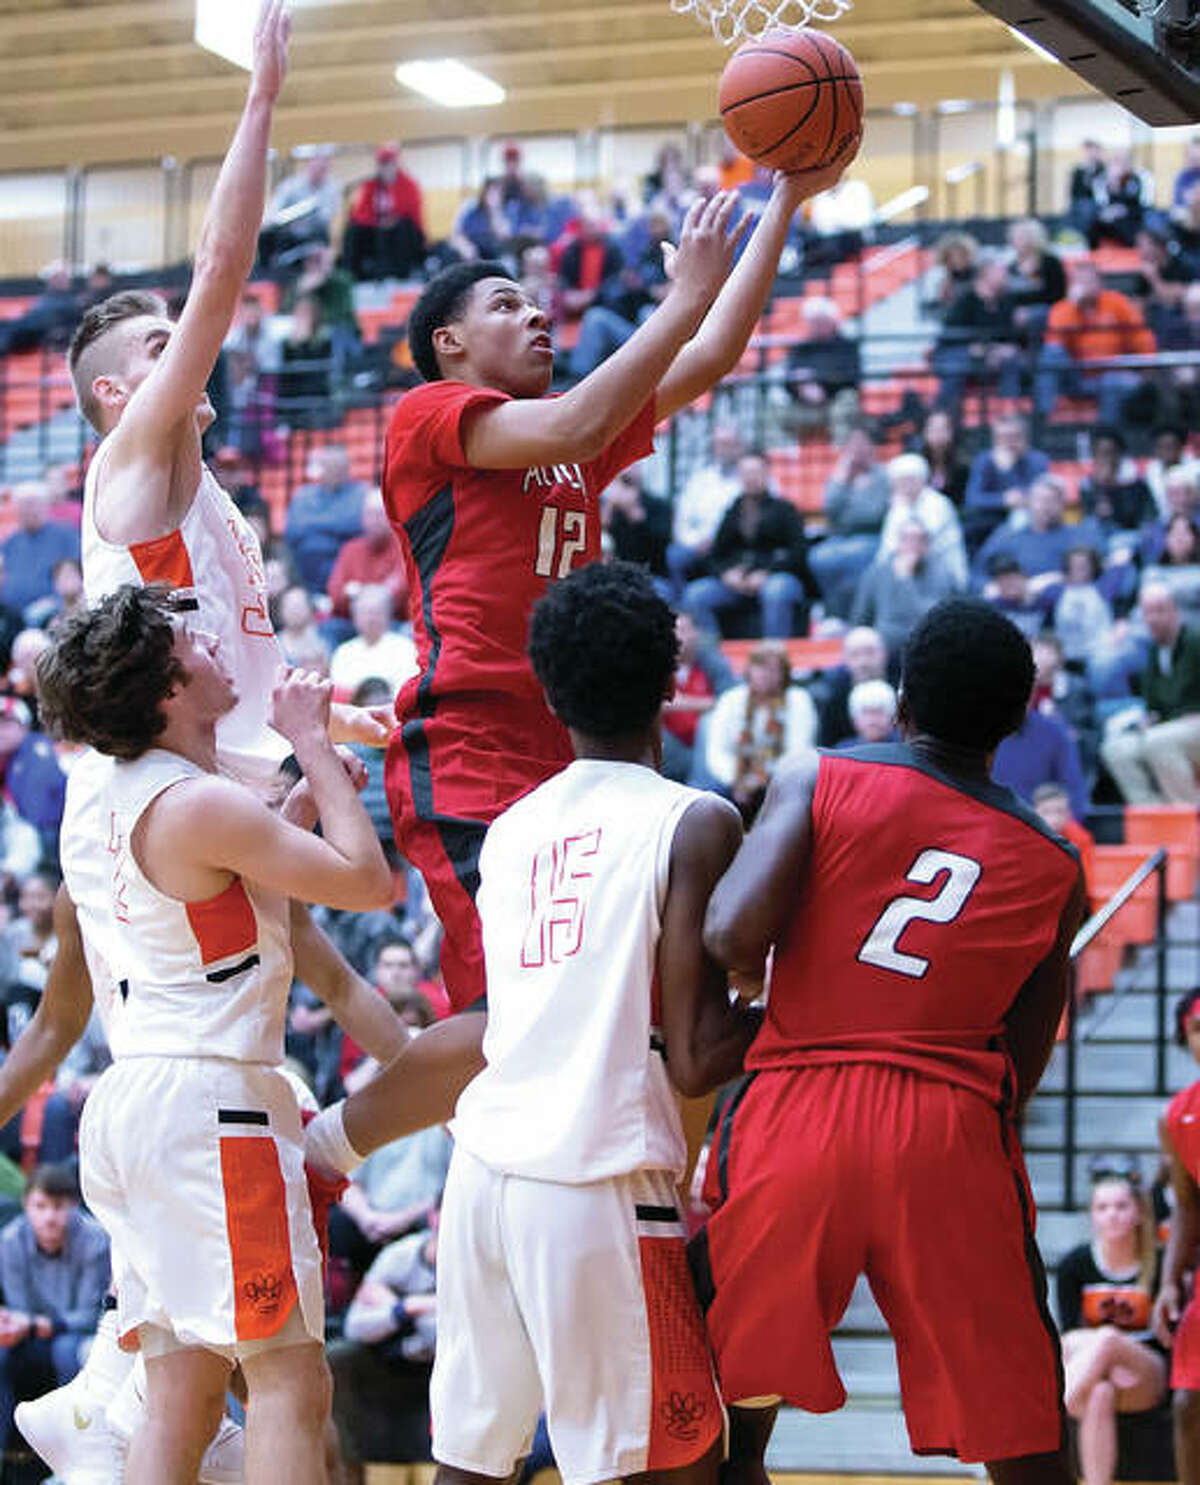 Alton's Josh Rivers (middle) goes to his left hand for two points after getting inside Edwardsville defenders (from left) Caleb Strohmeier, Jack Marinko and Jaylon Tuggle while the Redbirds' Kevin Caldwell Jr. (2) watches the play during Alton's overtime win on Jan. 12 at Lucco-Jackson Gym in Edwardsville. Both the Redbirds and Tigers spent the week in tournament action. While Edwardsville played Centralia for the title at the Salem Tourney late Saturday night, Alton completed play at the Belleville East Chick-fil-A Classic by defeating Columbia 64-56 in the seventh-place game at Belleville. The Redbirds salvaged one win from the tourney after being upset by Belleville Althoff in Thursday's consolation semifinals. Alton, which had lost six of its previous seven games, improved to 11-7. Kevin Caldwell Jr. scored 25 points, Malik Smith had a double-double with 22 points and 13 rebounds, and Donovan Clay chipped in 11 for the Redbirds. Columbia is 10-9.